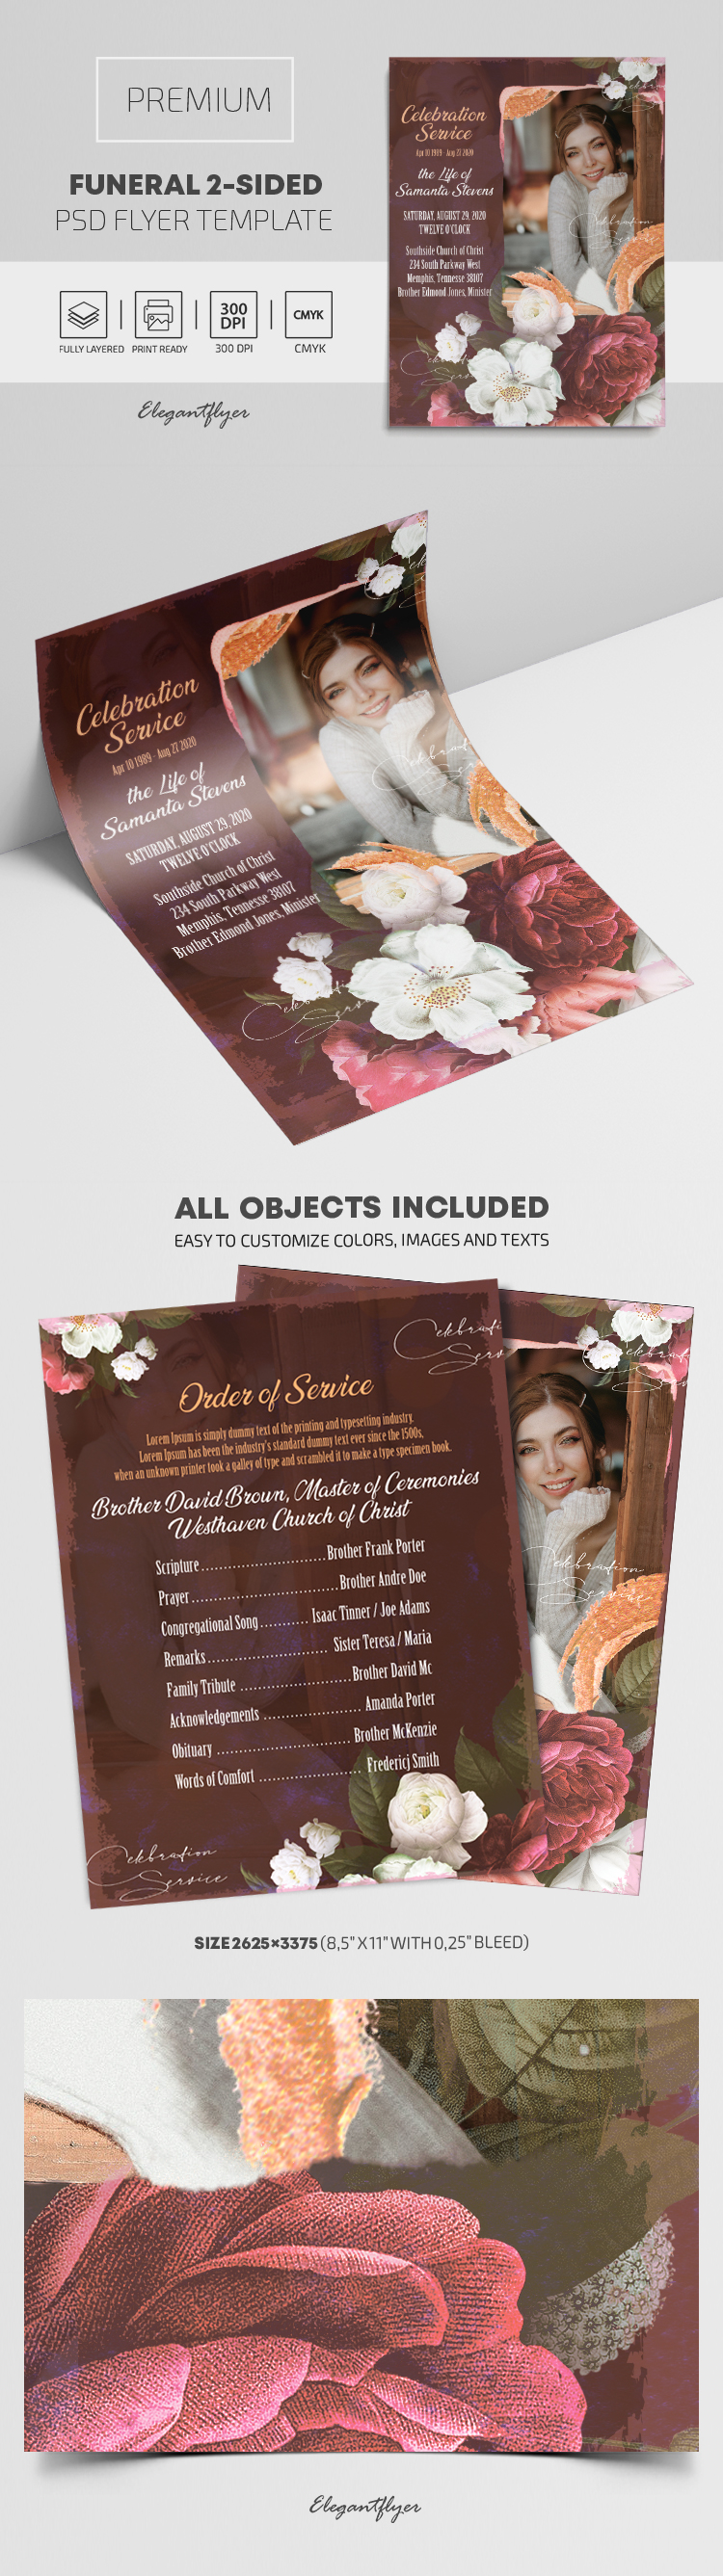 Funeral 2-Sided – Premium PSD Flyer Template